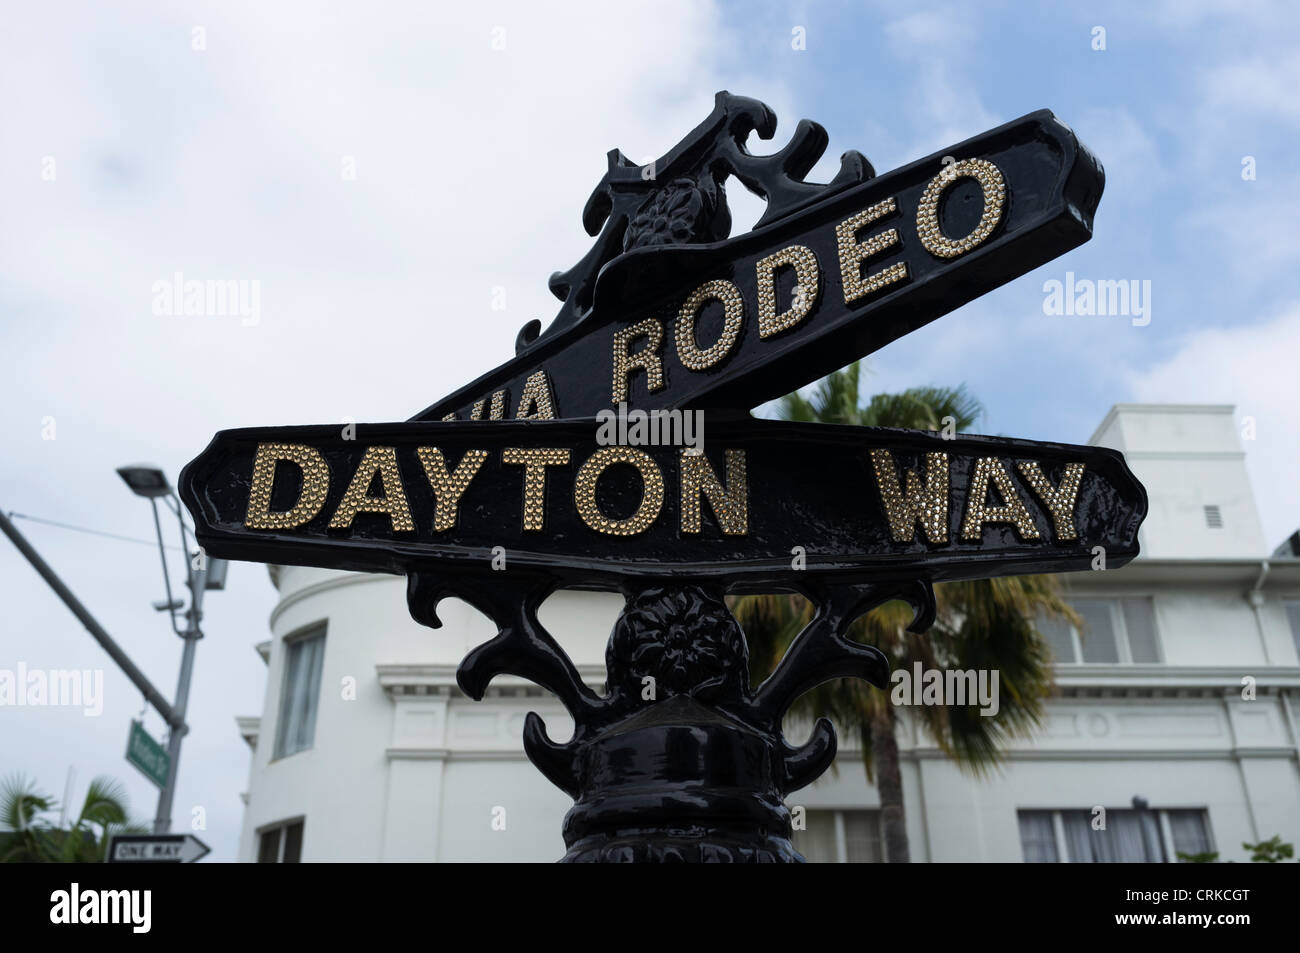 Via Rodeo and Dayton way road signs in Beverly Hills - Stock Image